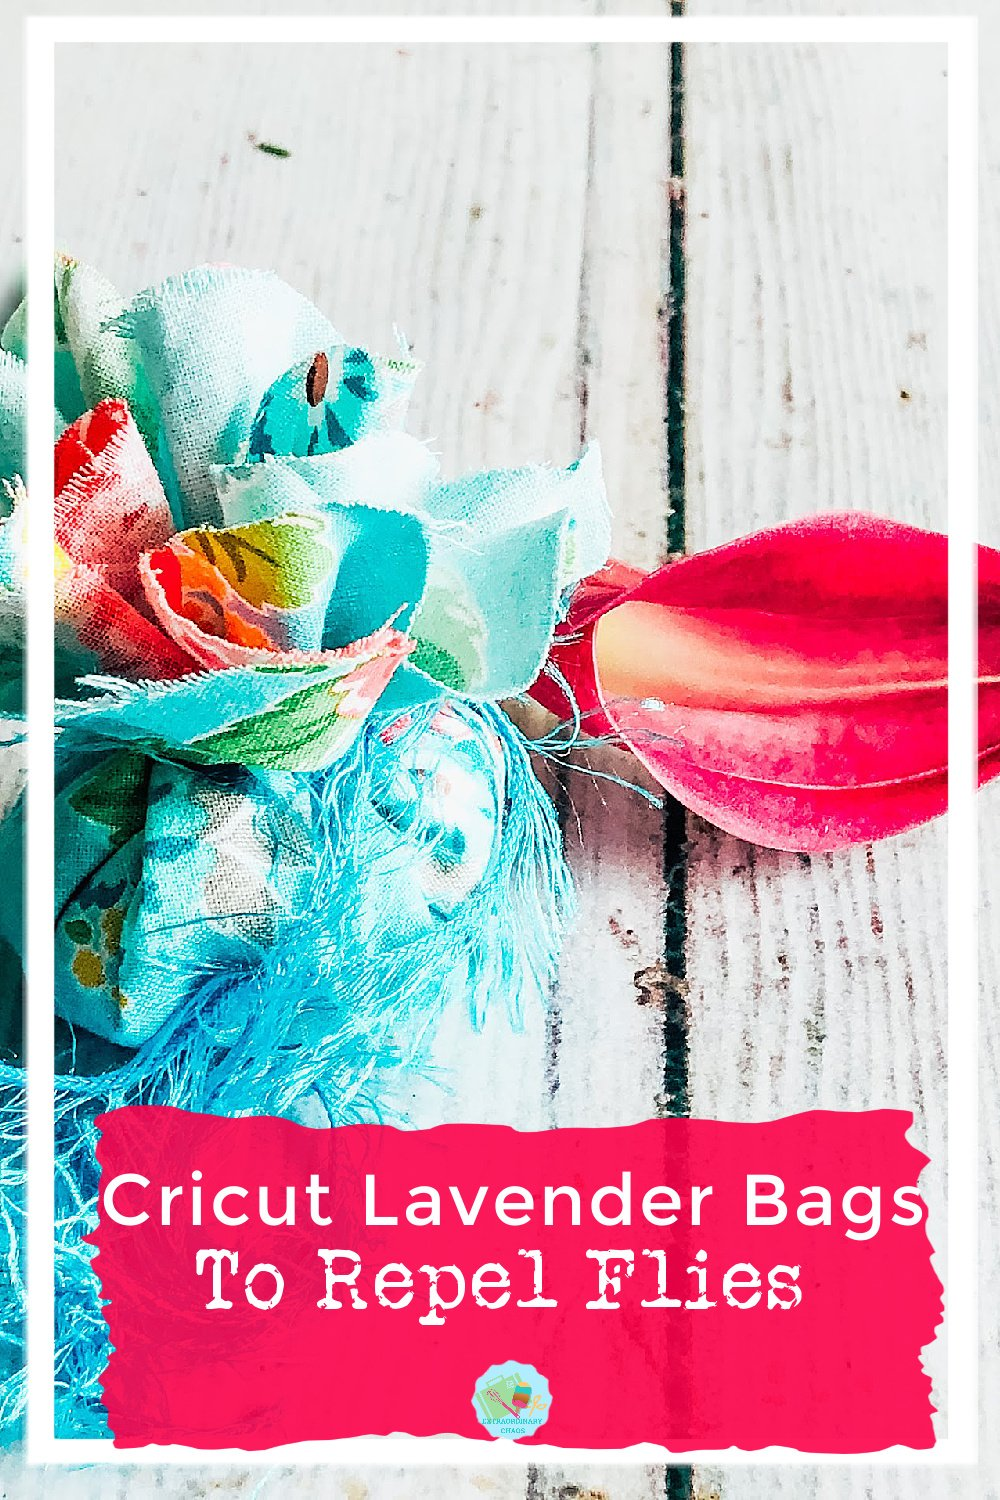 How to make Homemade Lavender Bags To Repel Flies with Cricut